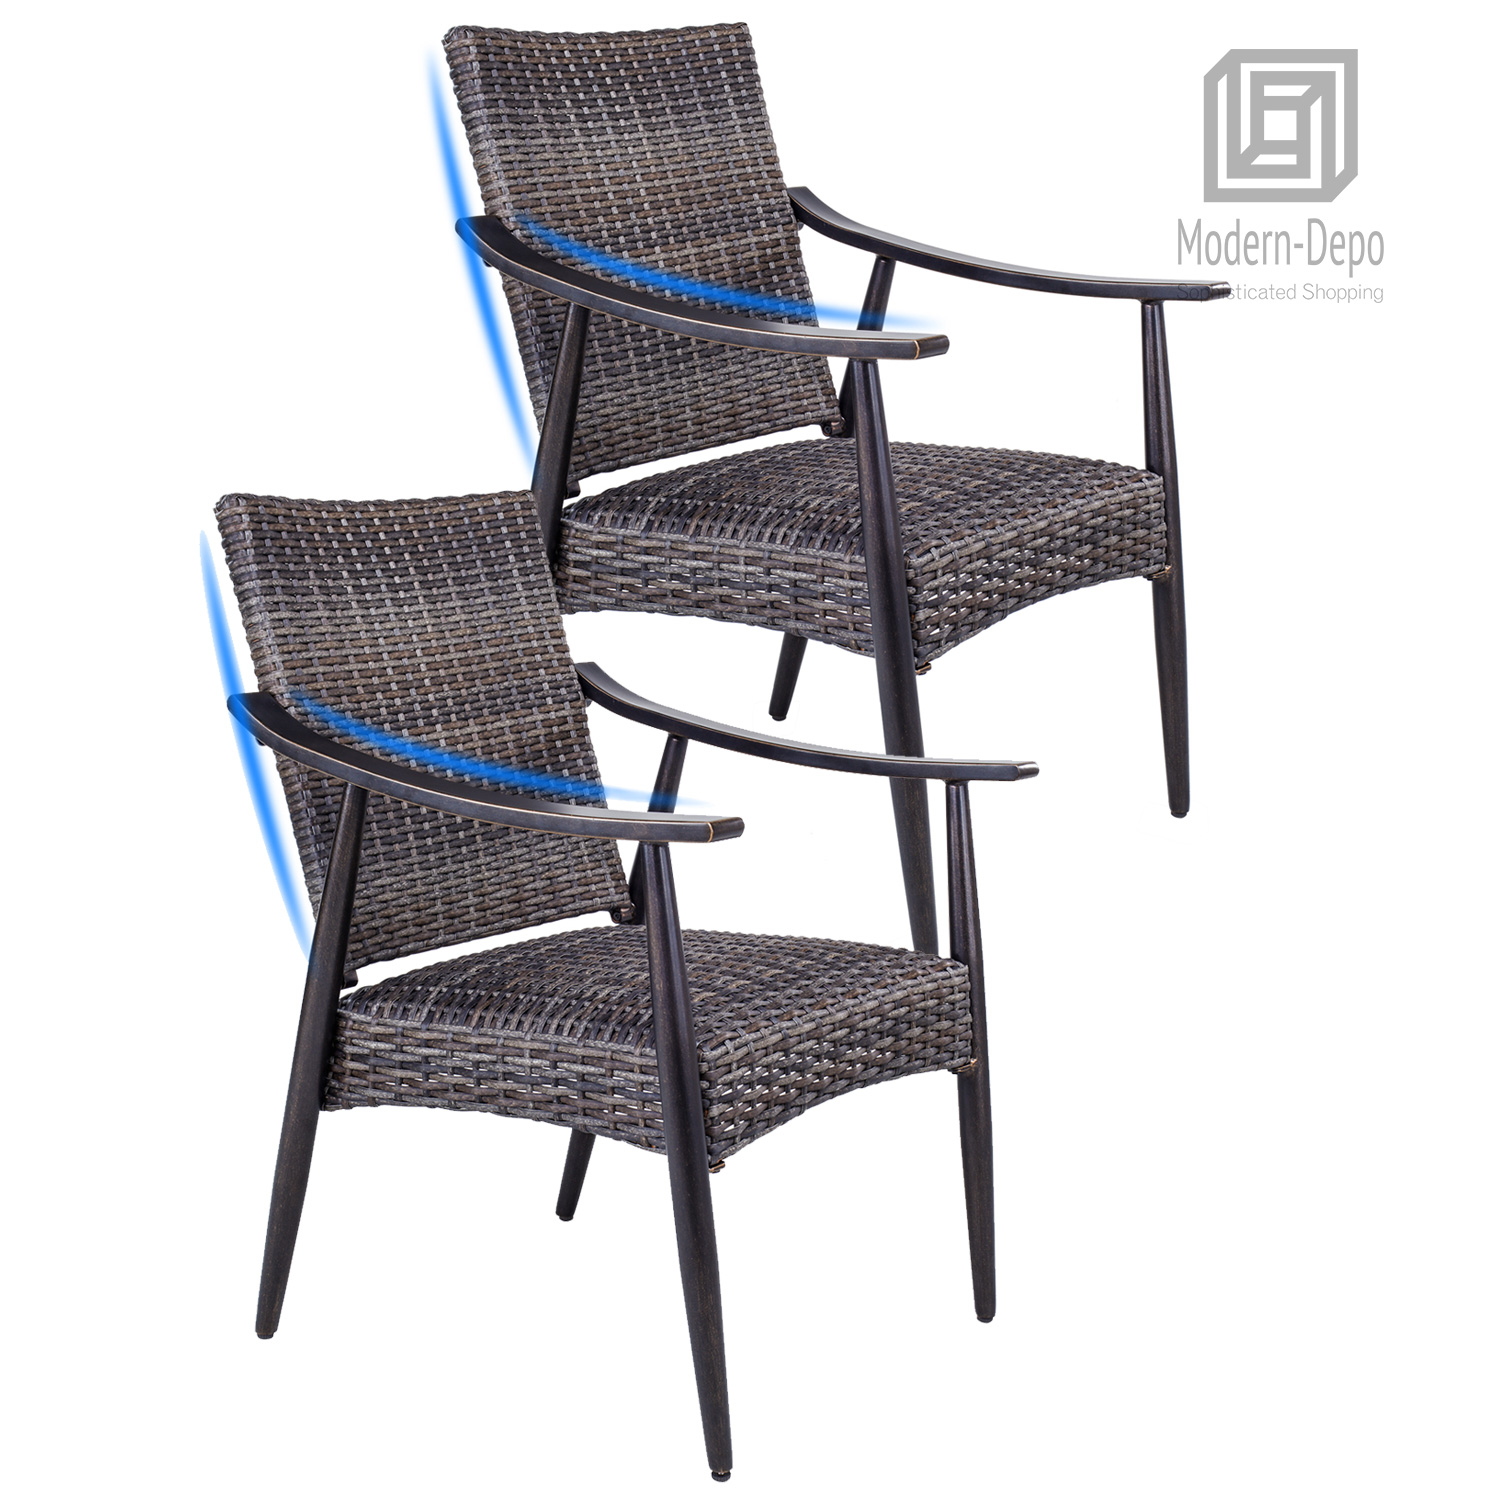 Details About Patio Garden Wicker Dining Chairs Indoor Outdoor Rattan Arm Chairs Set Of 2